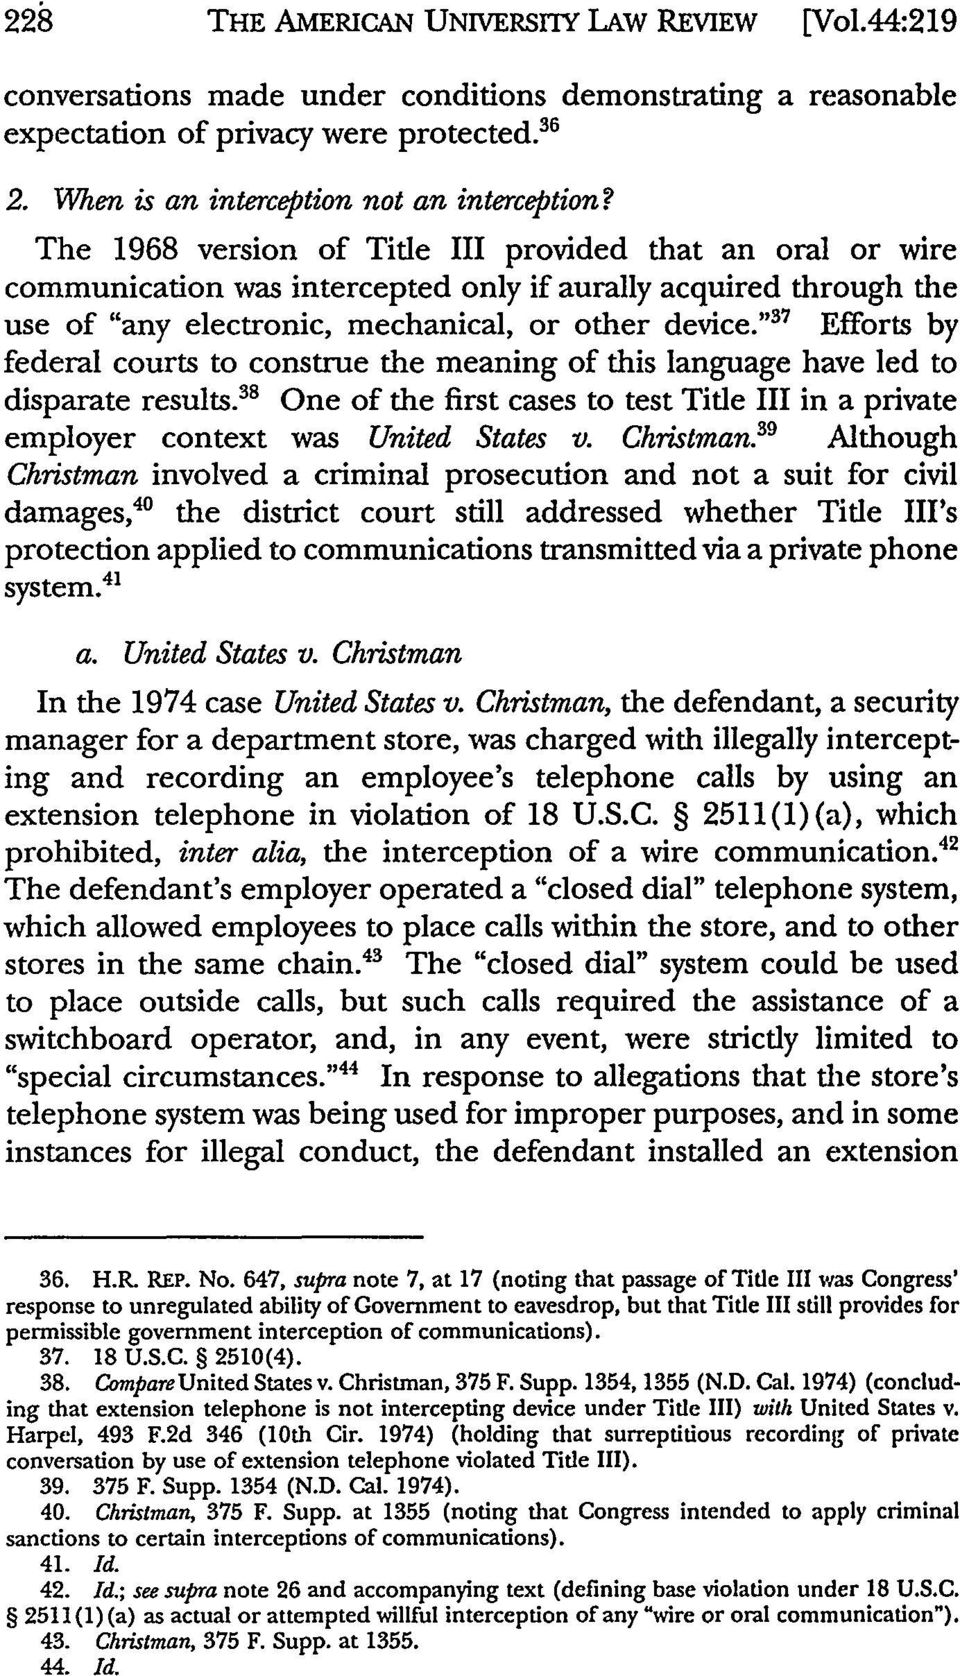 "The 1968 version of Title III provided that an oral or wire communication was intercepted only if aurally acquired through the use of ""any electronic, mechanical, or other device."